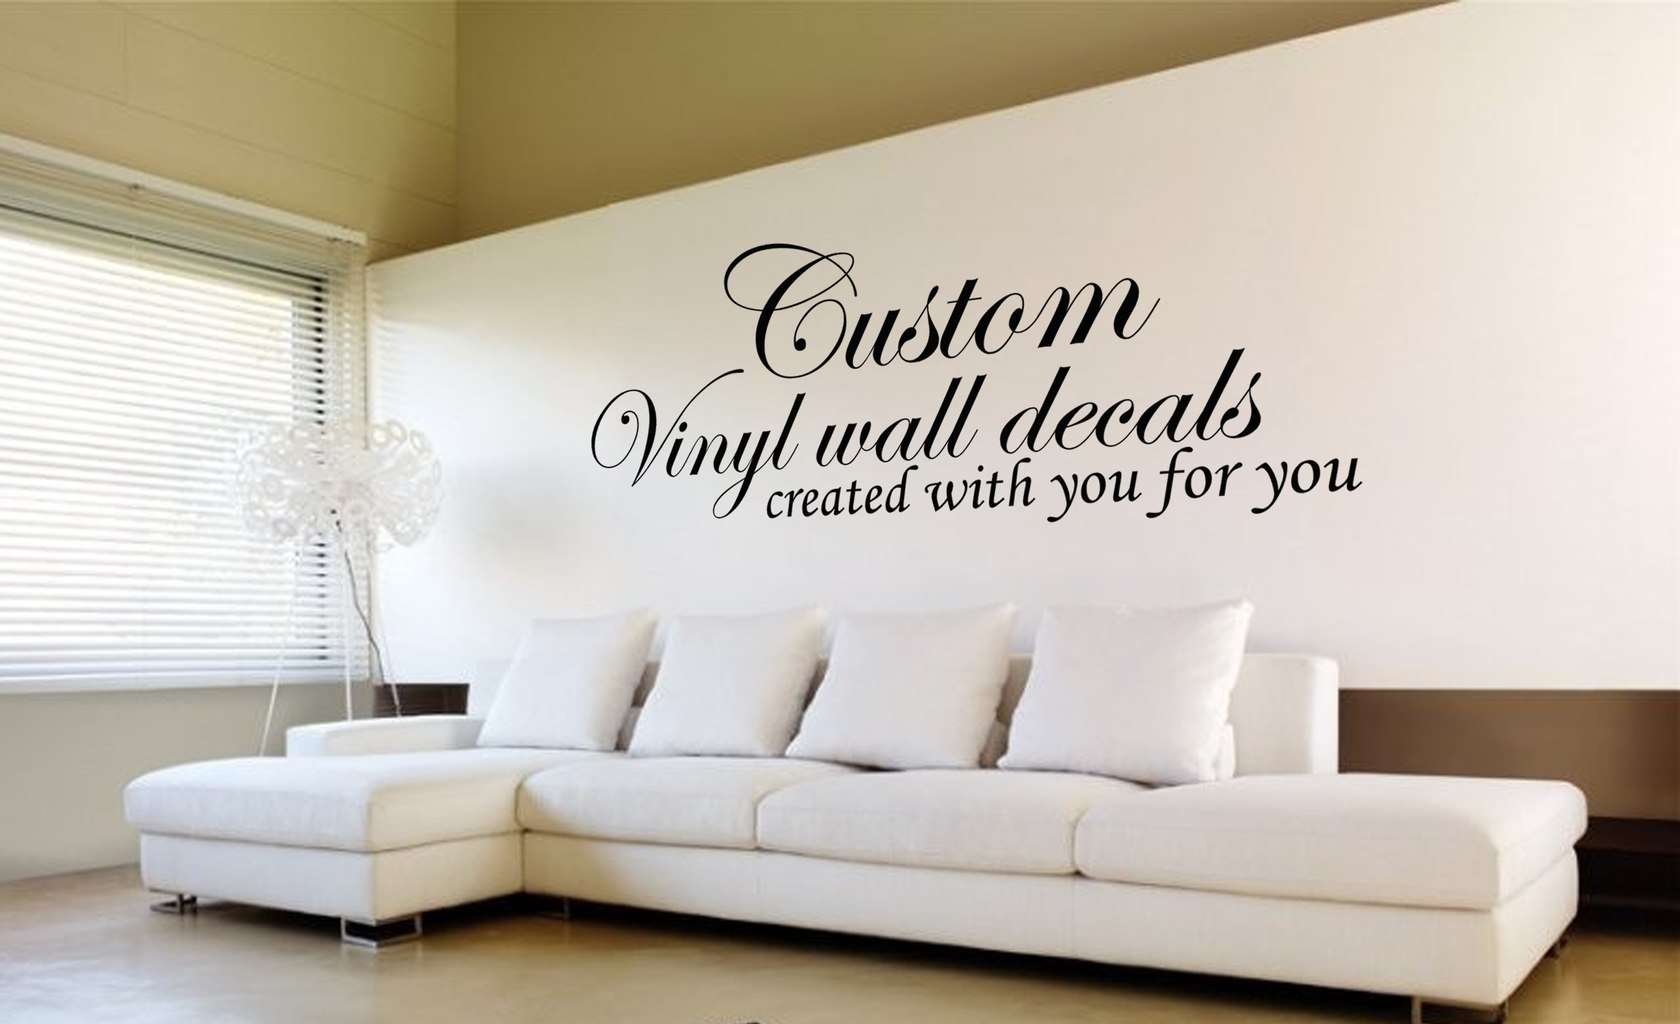 Wall Stencils Design Your Own : Design your own wall art decal sticker